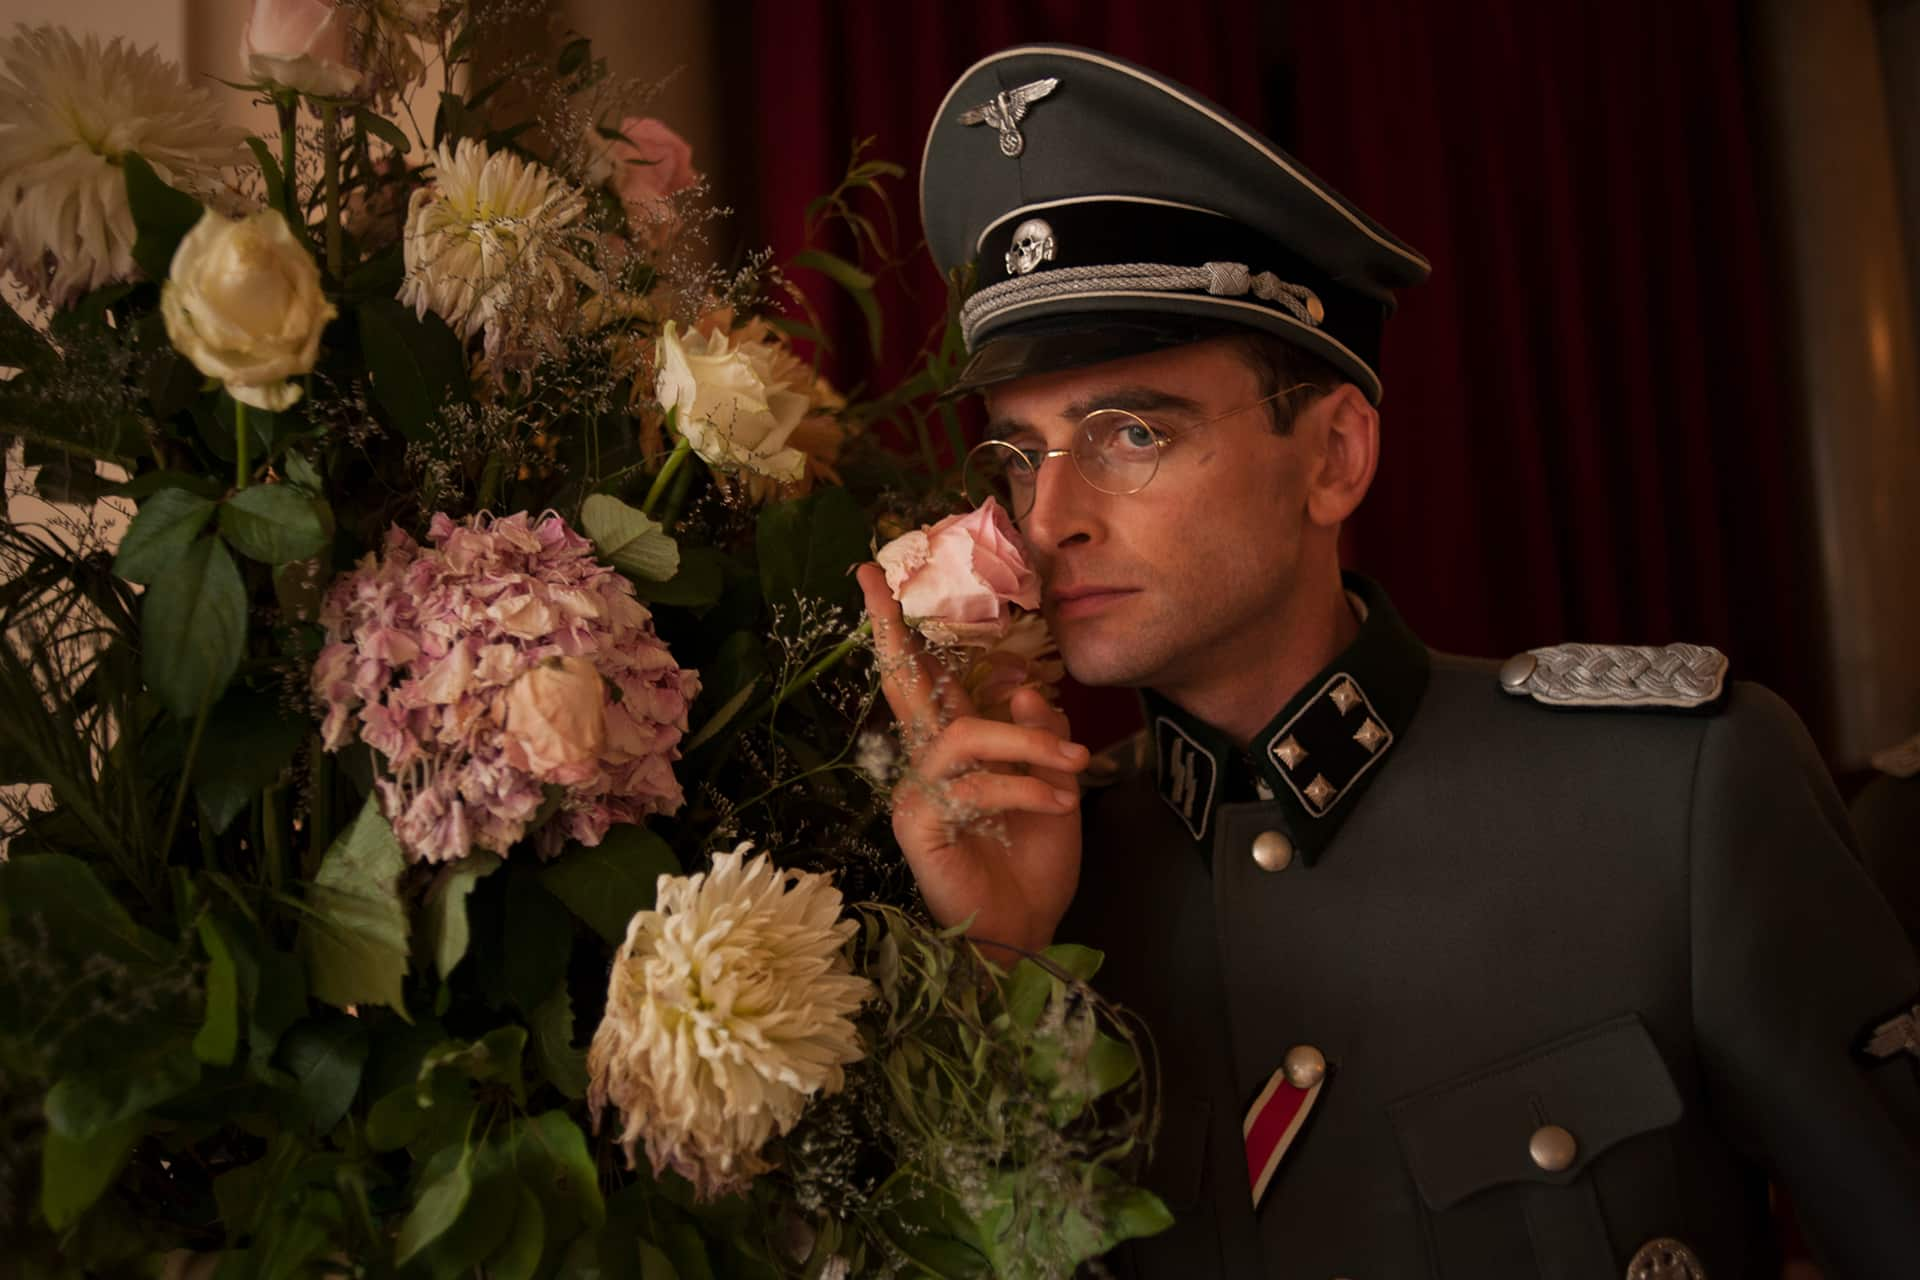 Jack Laskey (Alfred) takes some time to smell the roses on the set of X Company Season 3.